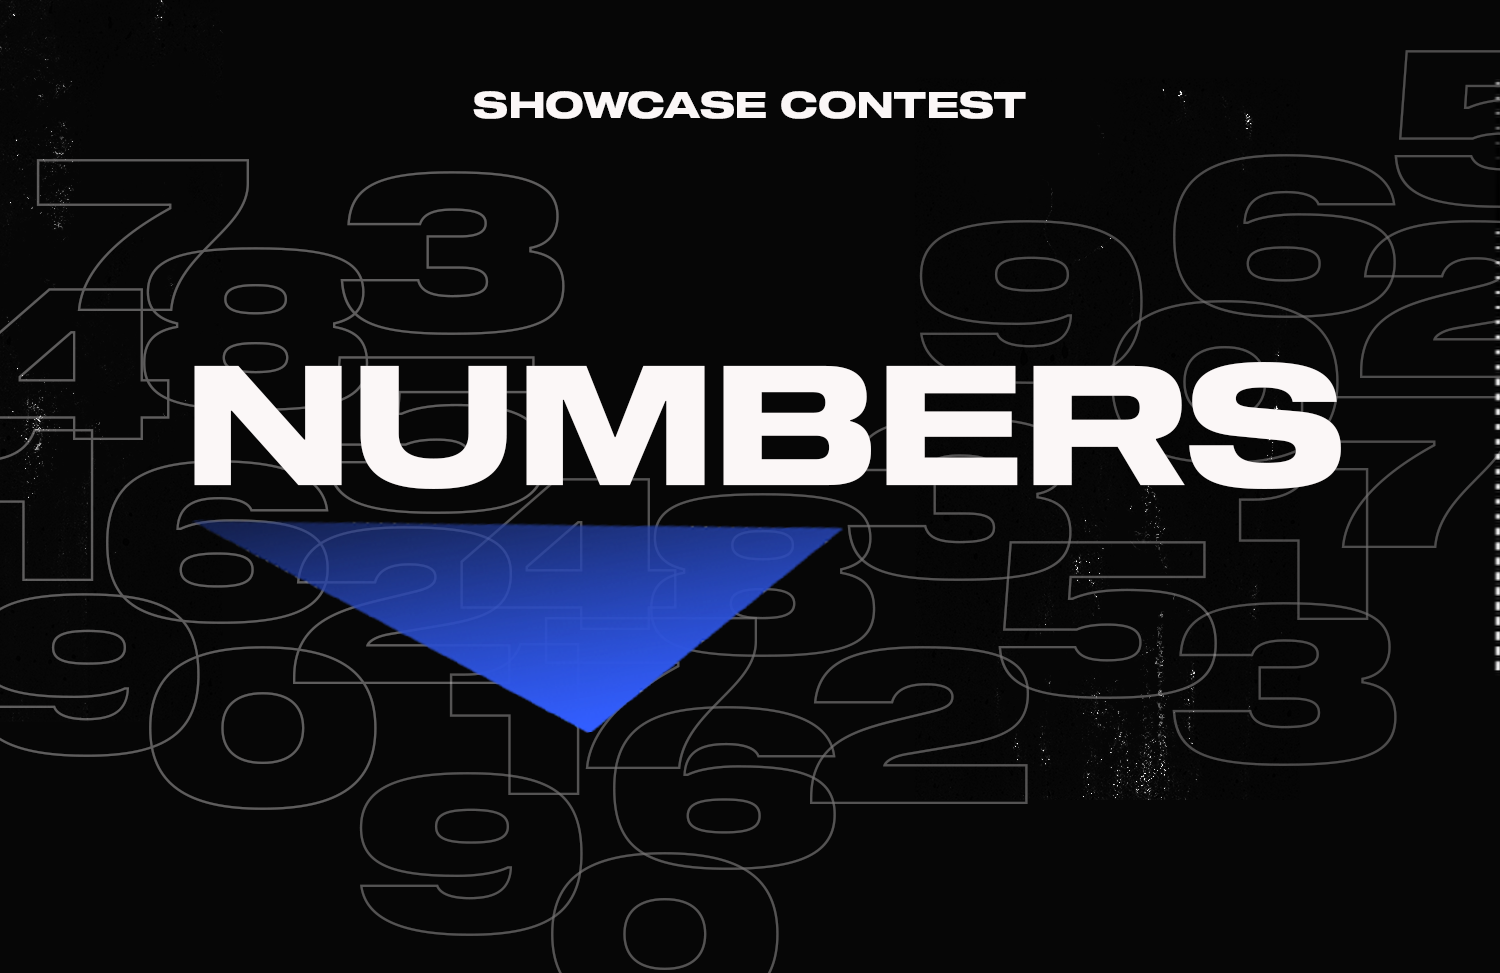 Time to give numerology a go. We want to see your best Showcase… by the numbers.